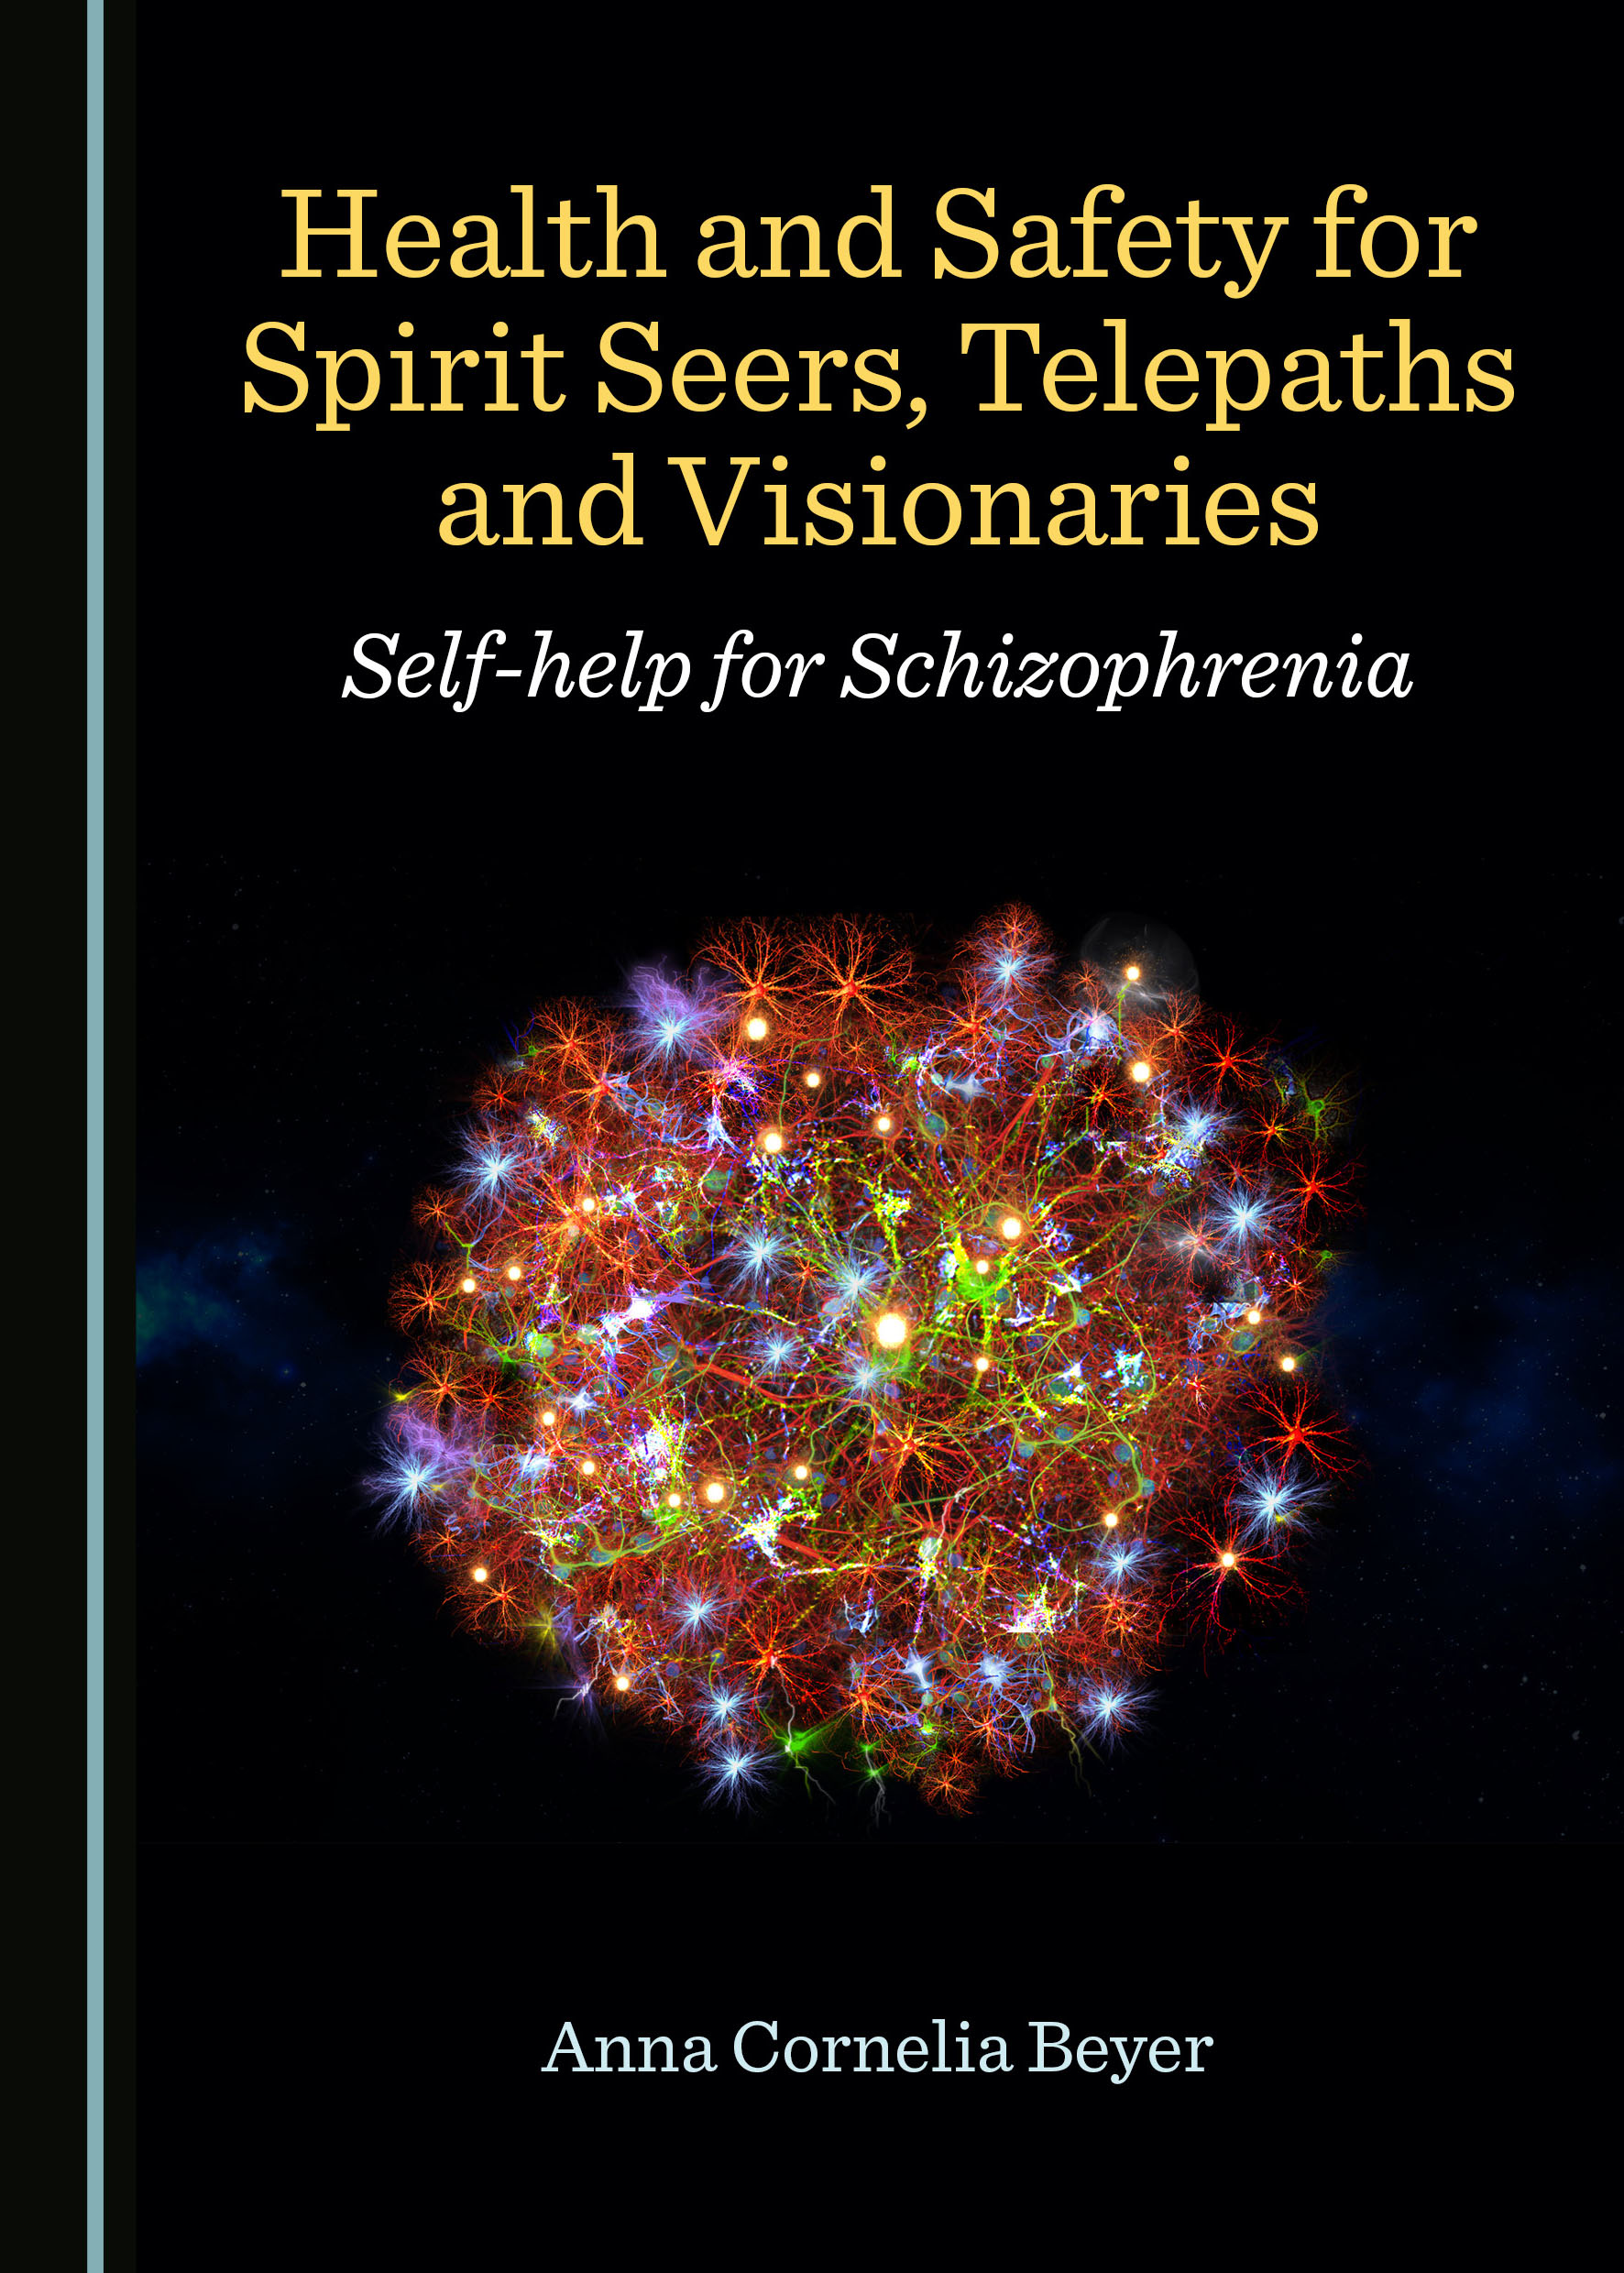 Health and Safety for Spirit Seers, Telepaths and Visionaries: Self-help for Schizophrenia